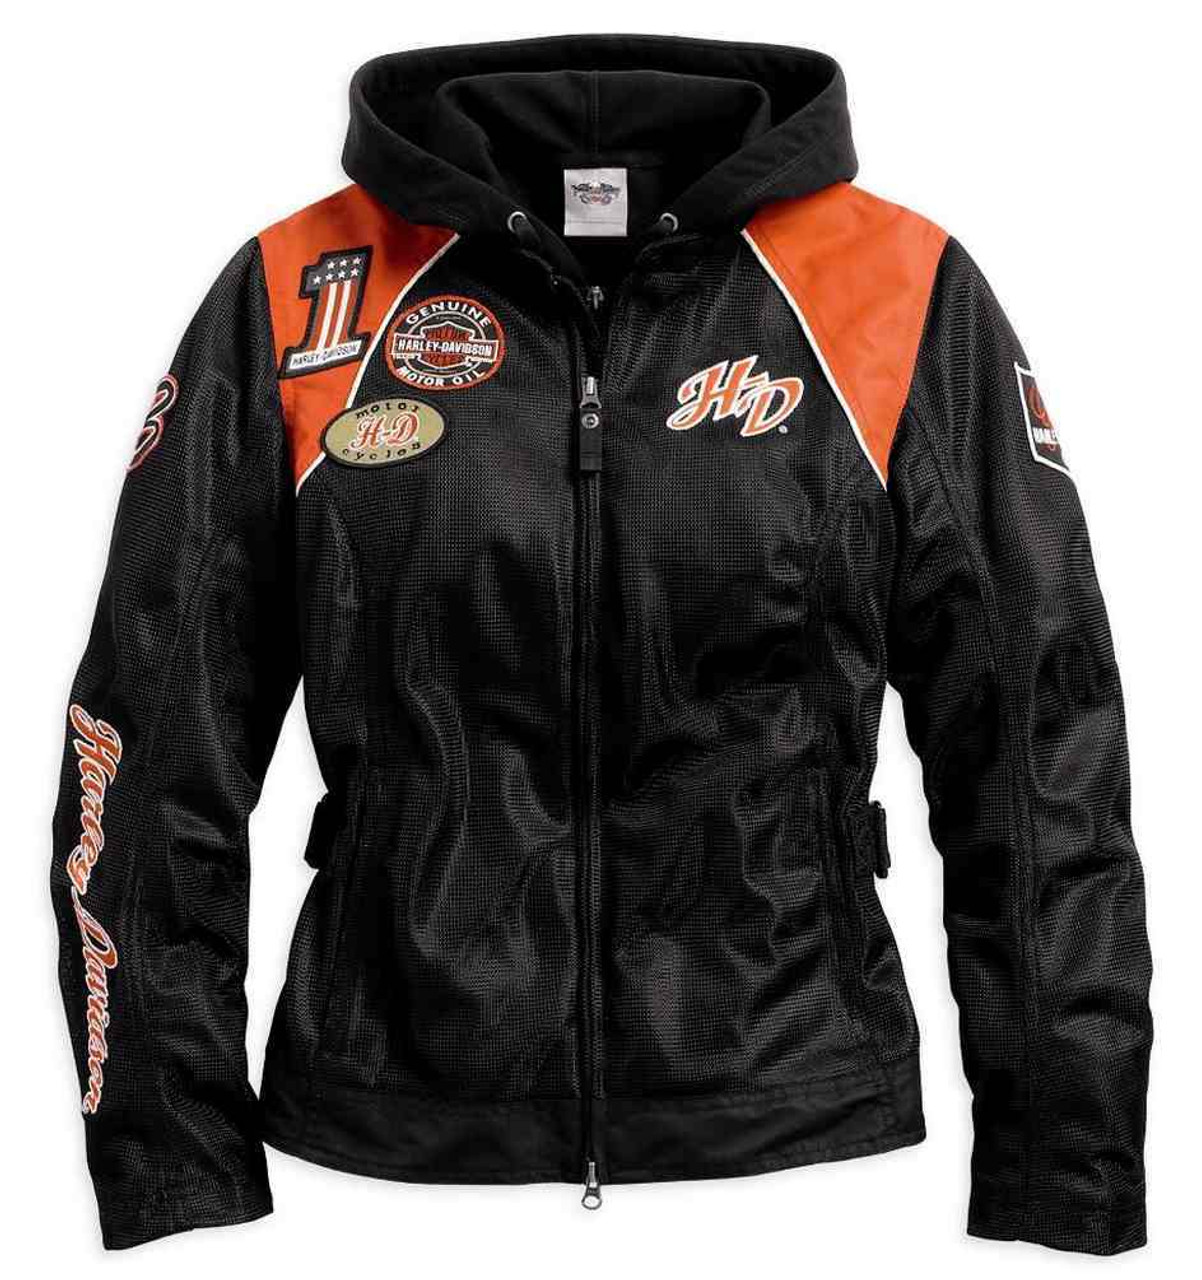 d5c9fbfe81a6de harley davidson+3-1 mesh riding jacket+removable hoodie